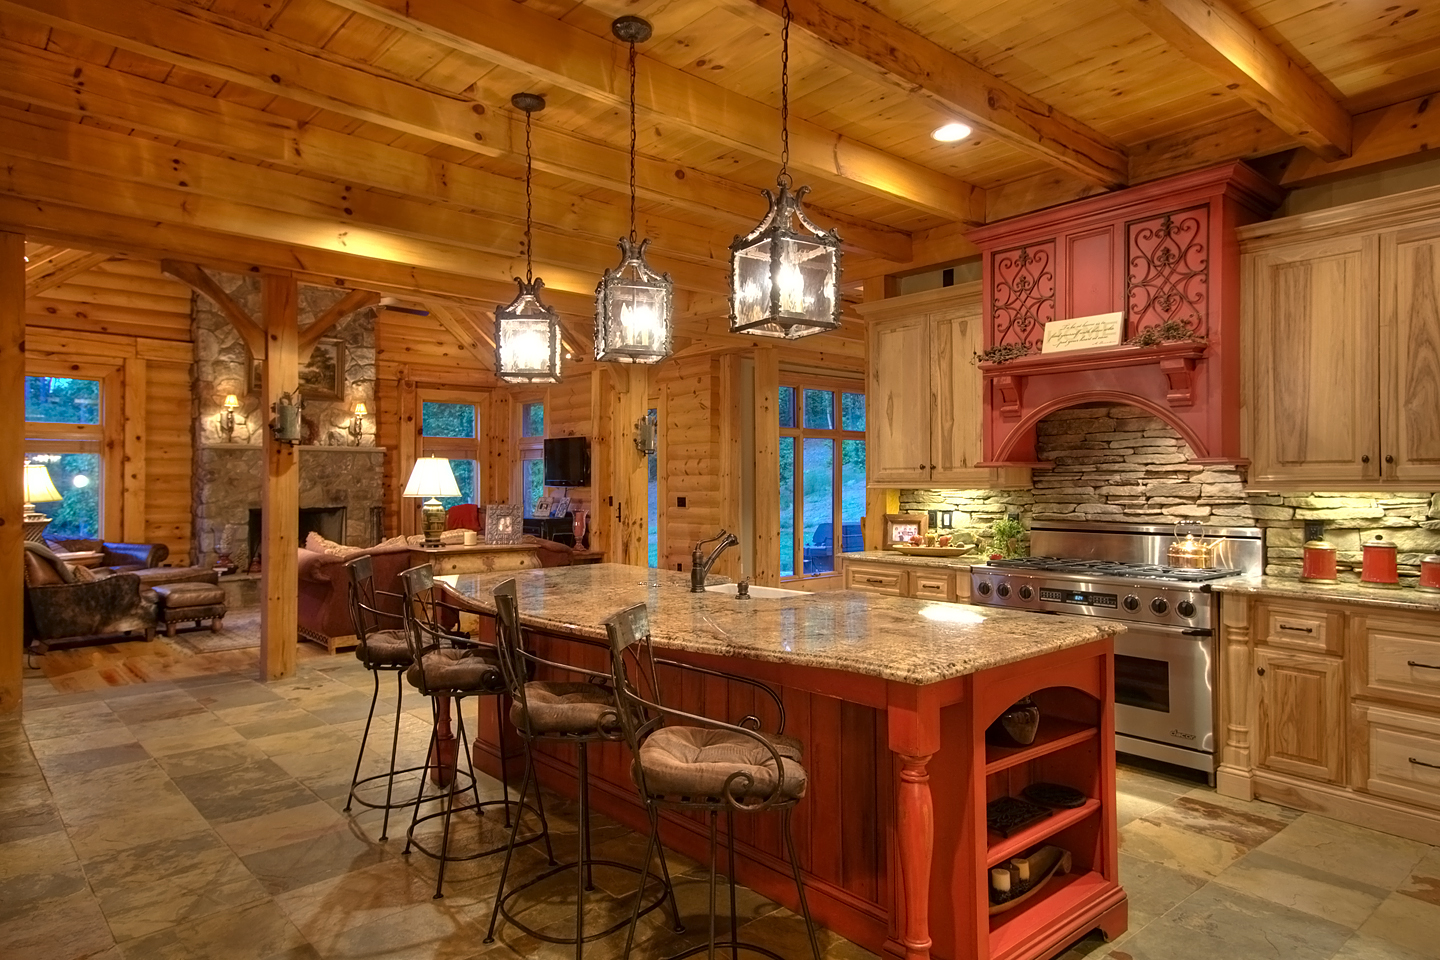 Rustic Cabin Kitchen Lighting